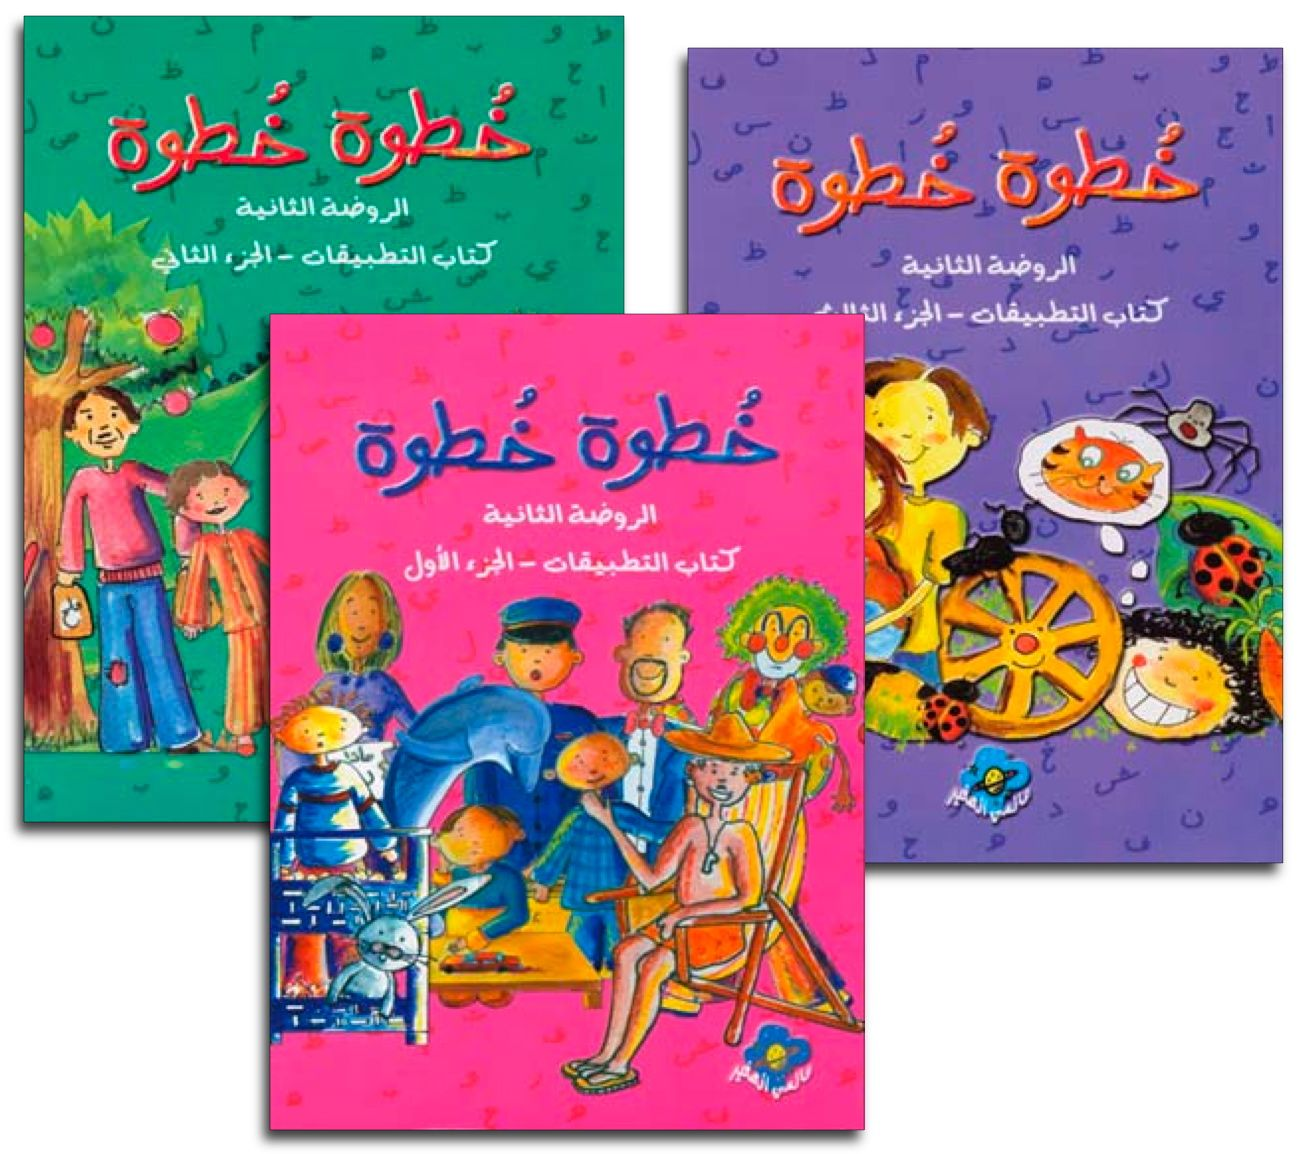 Yhst 77633636073789 2251 71096878 1311 1154 Alphabet Coloring Fun Activities Learning Arabic